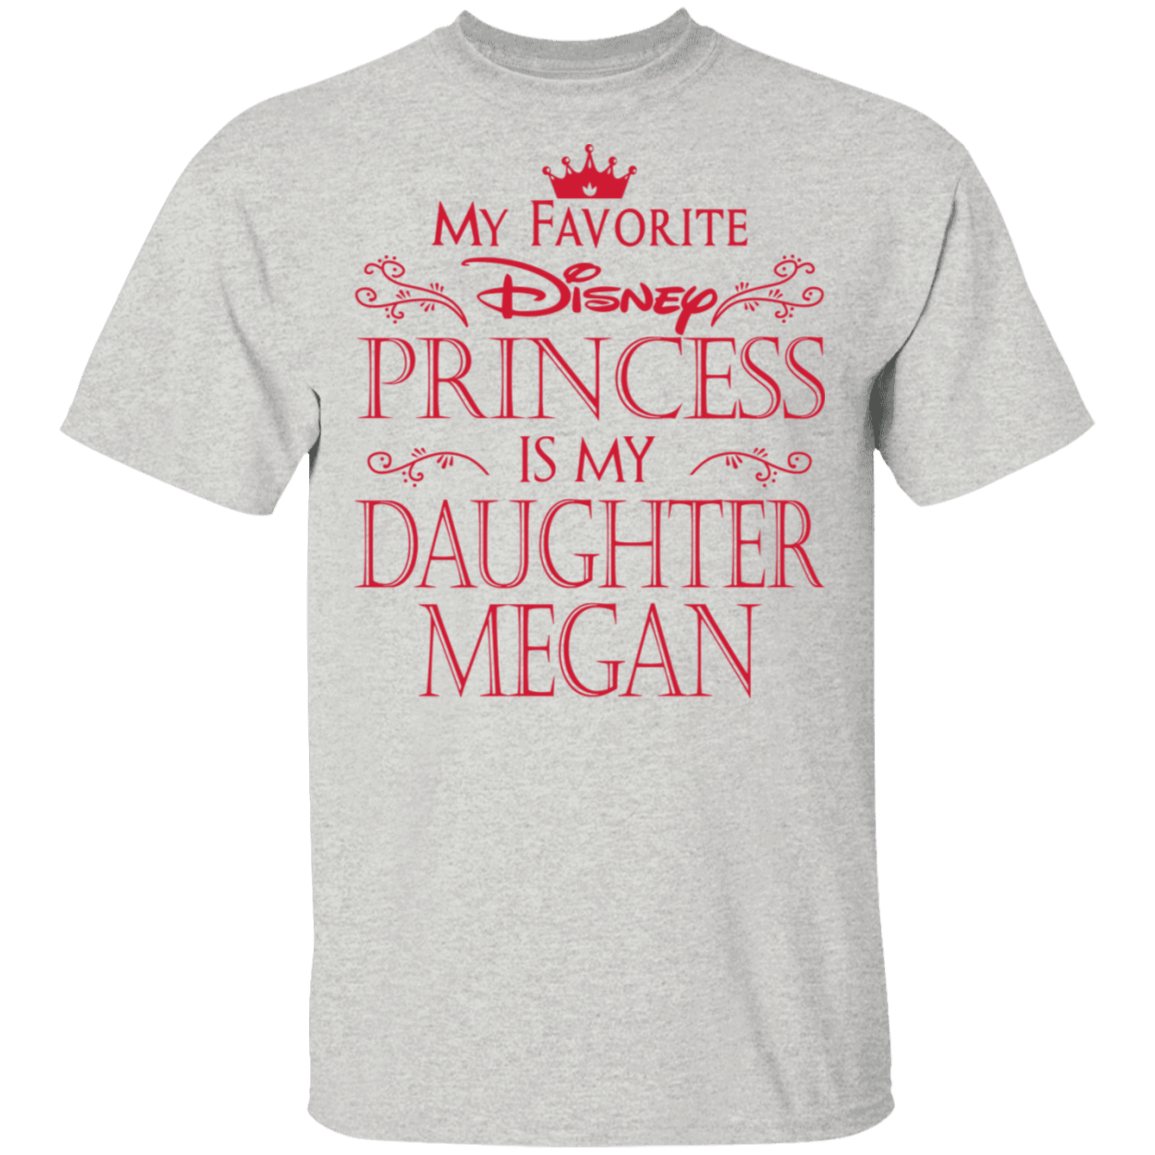 My Favorite Disney Princess Is My Daughter Megan T-Shirts, Hoodies, Tank 1049-9952-81647389-48184 - Tee Ript